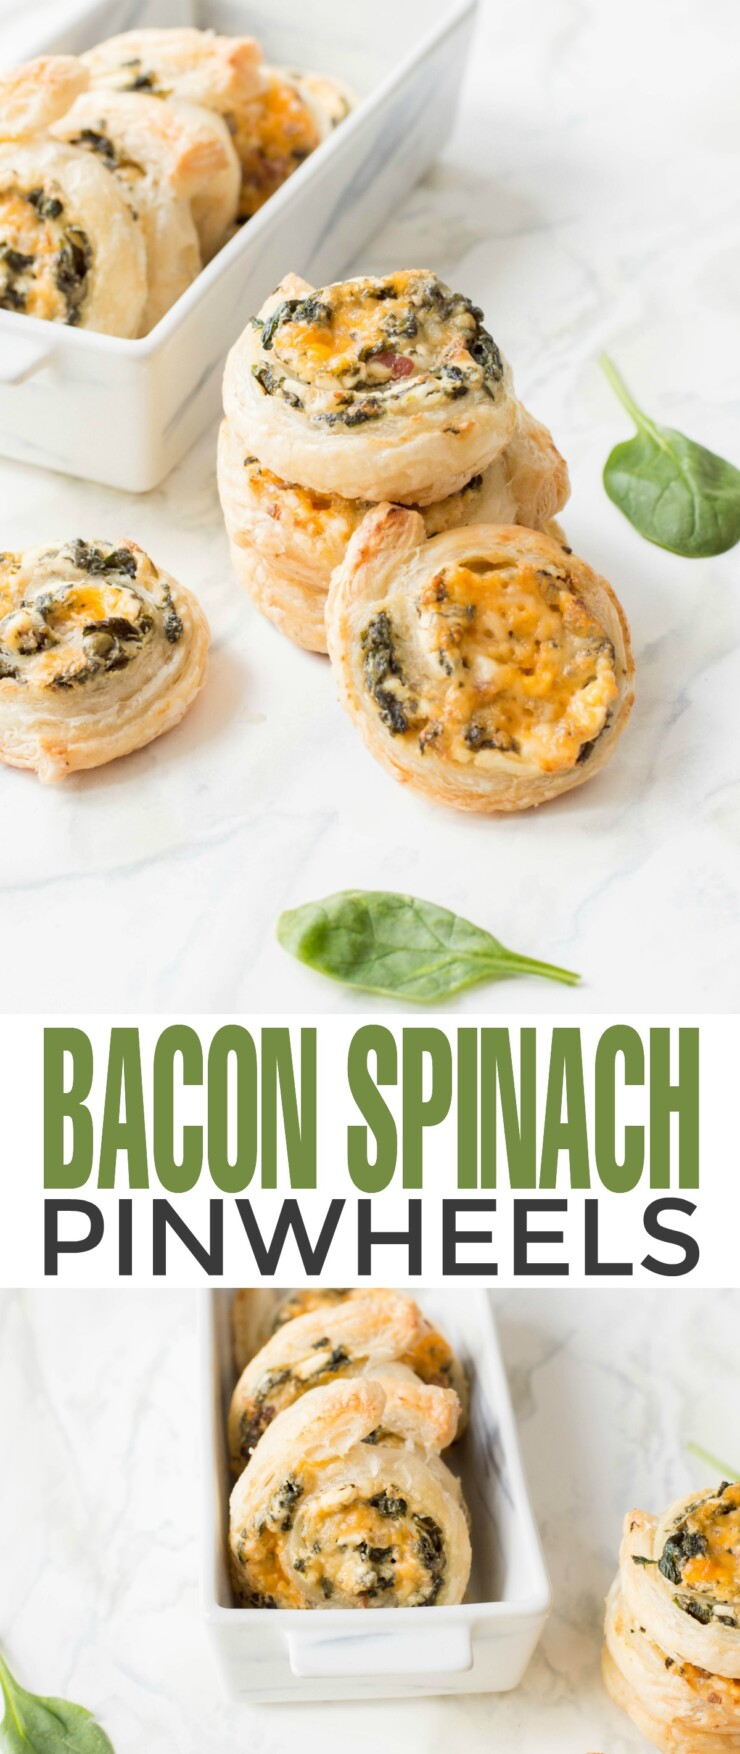 When it comes to entertaining, having an easy and delicious appetizer in your repetoir like these Bacon Spinach Pinwheels is a must. They are a crowd pleasing appetizer made with ingredients that are easy to find which are sure to make them a go-to recipe.